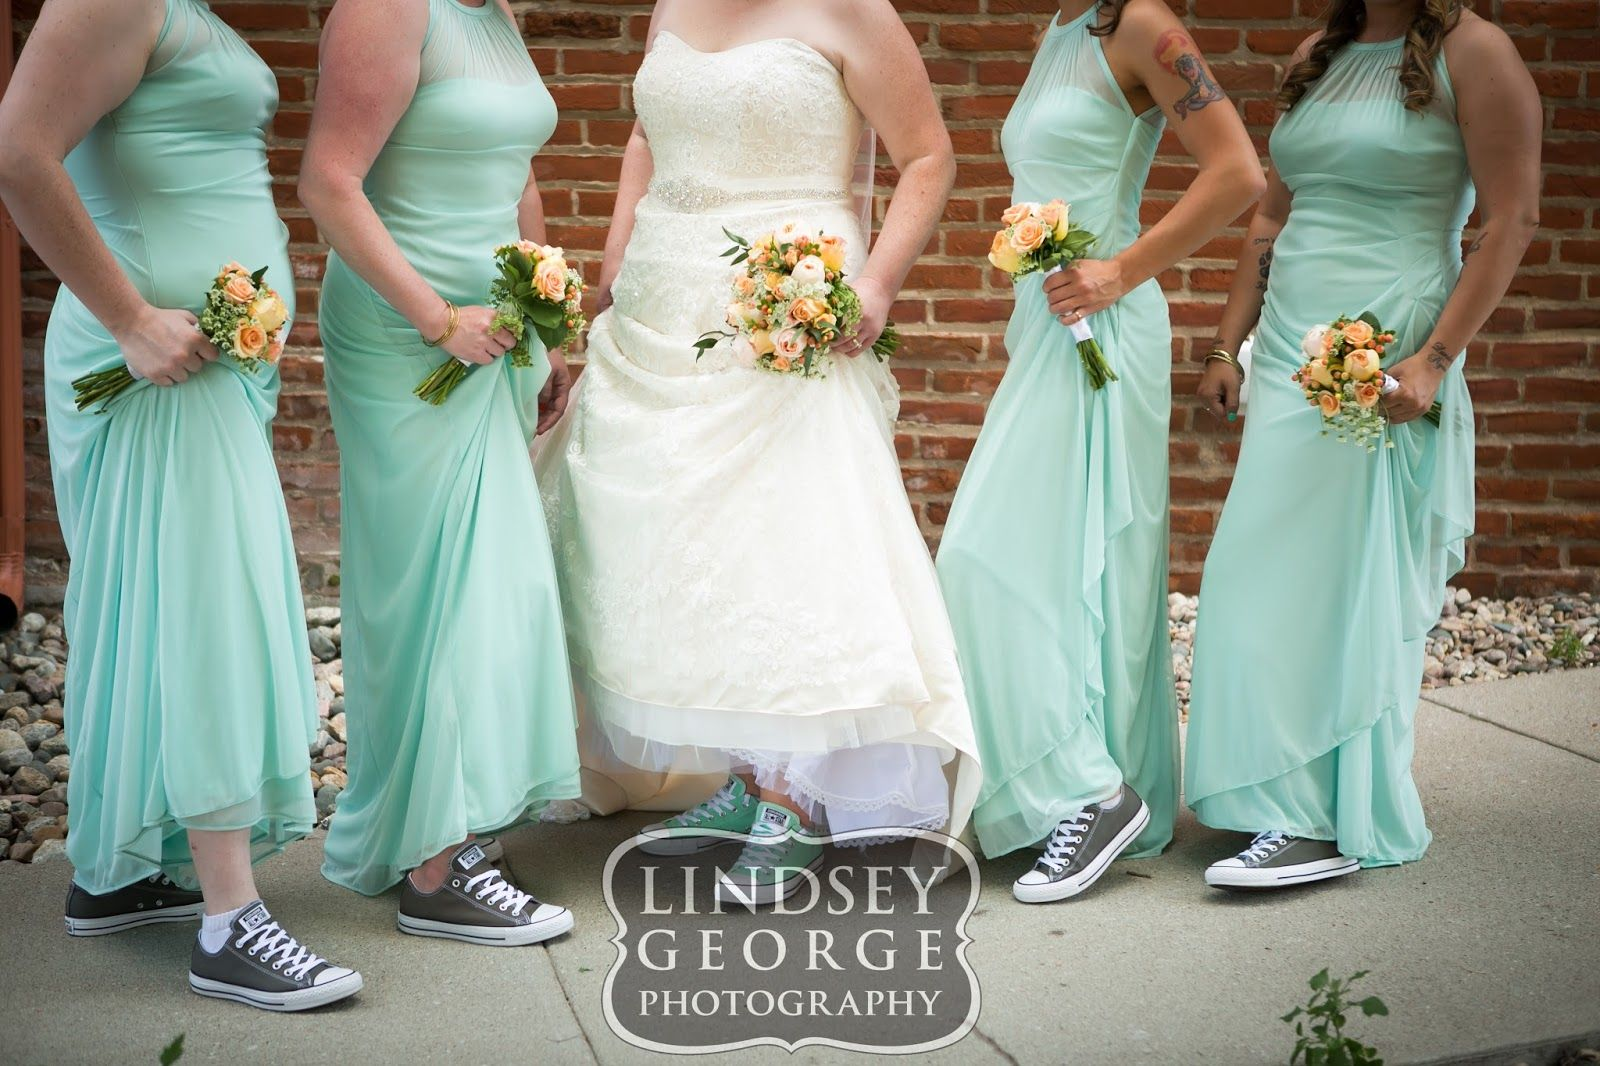 6b8f4d20474f Bridesmaids and bride wearing chucks Chuck Taylor Converse fun and  comfortable wedding shoes - click to view full gallery